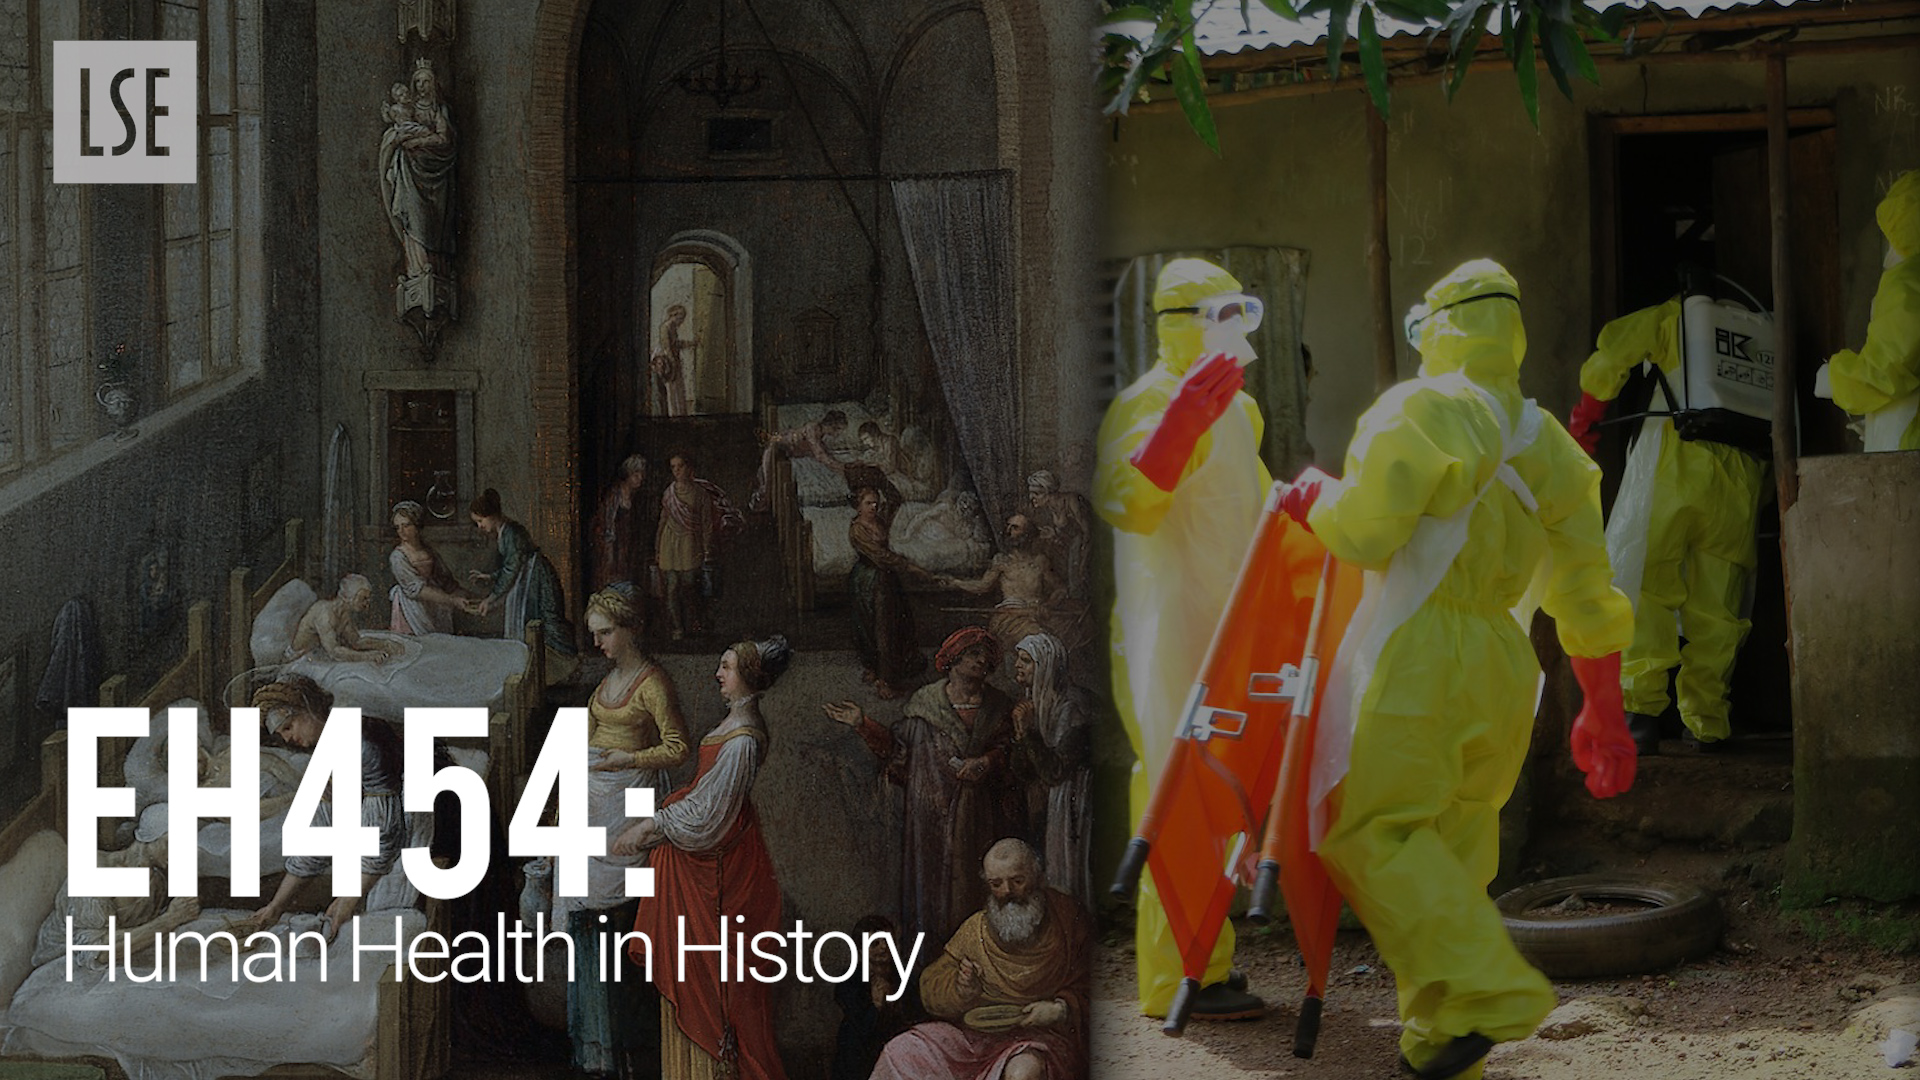 EH454 Human Health in History